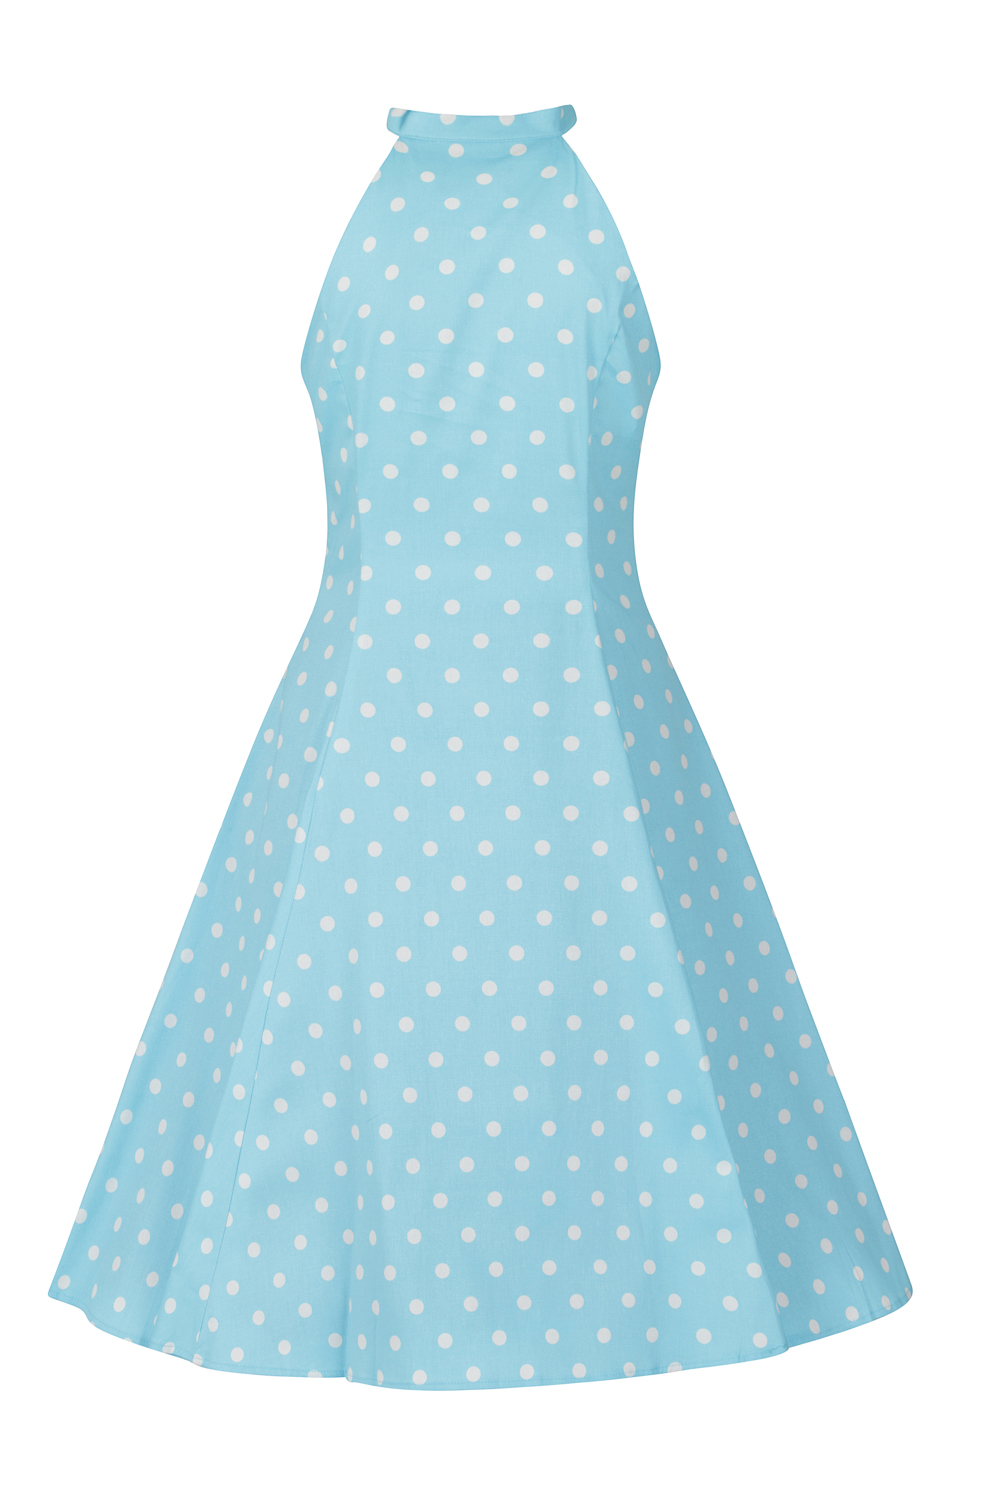 Dotty Polka Dot Swing Dress